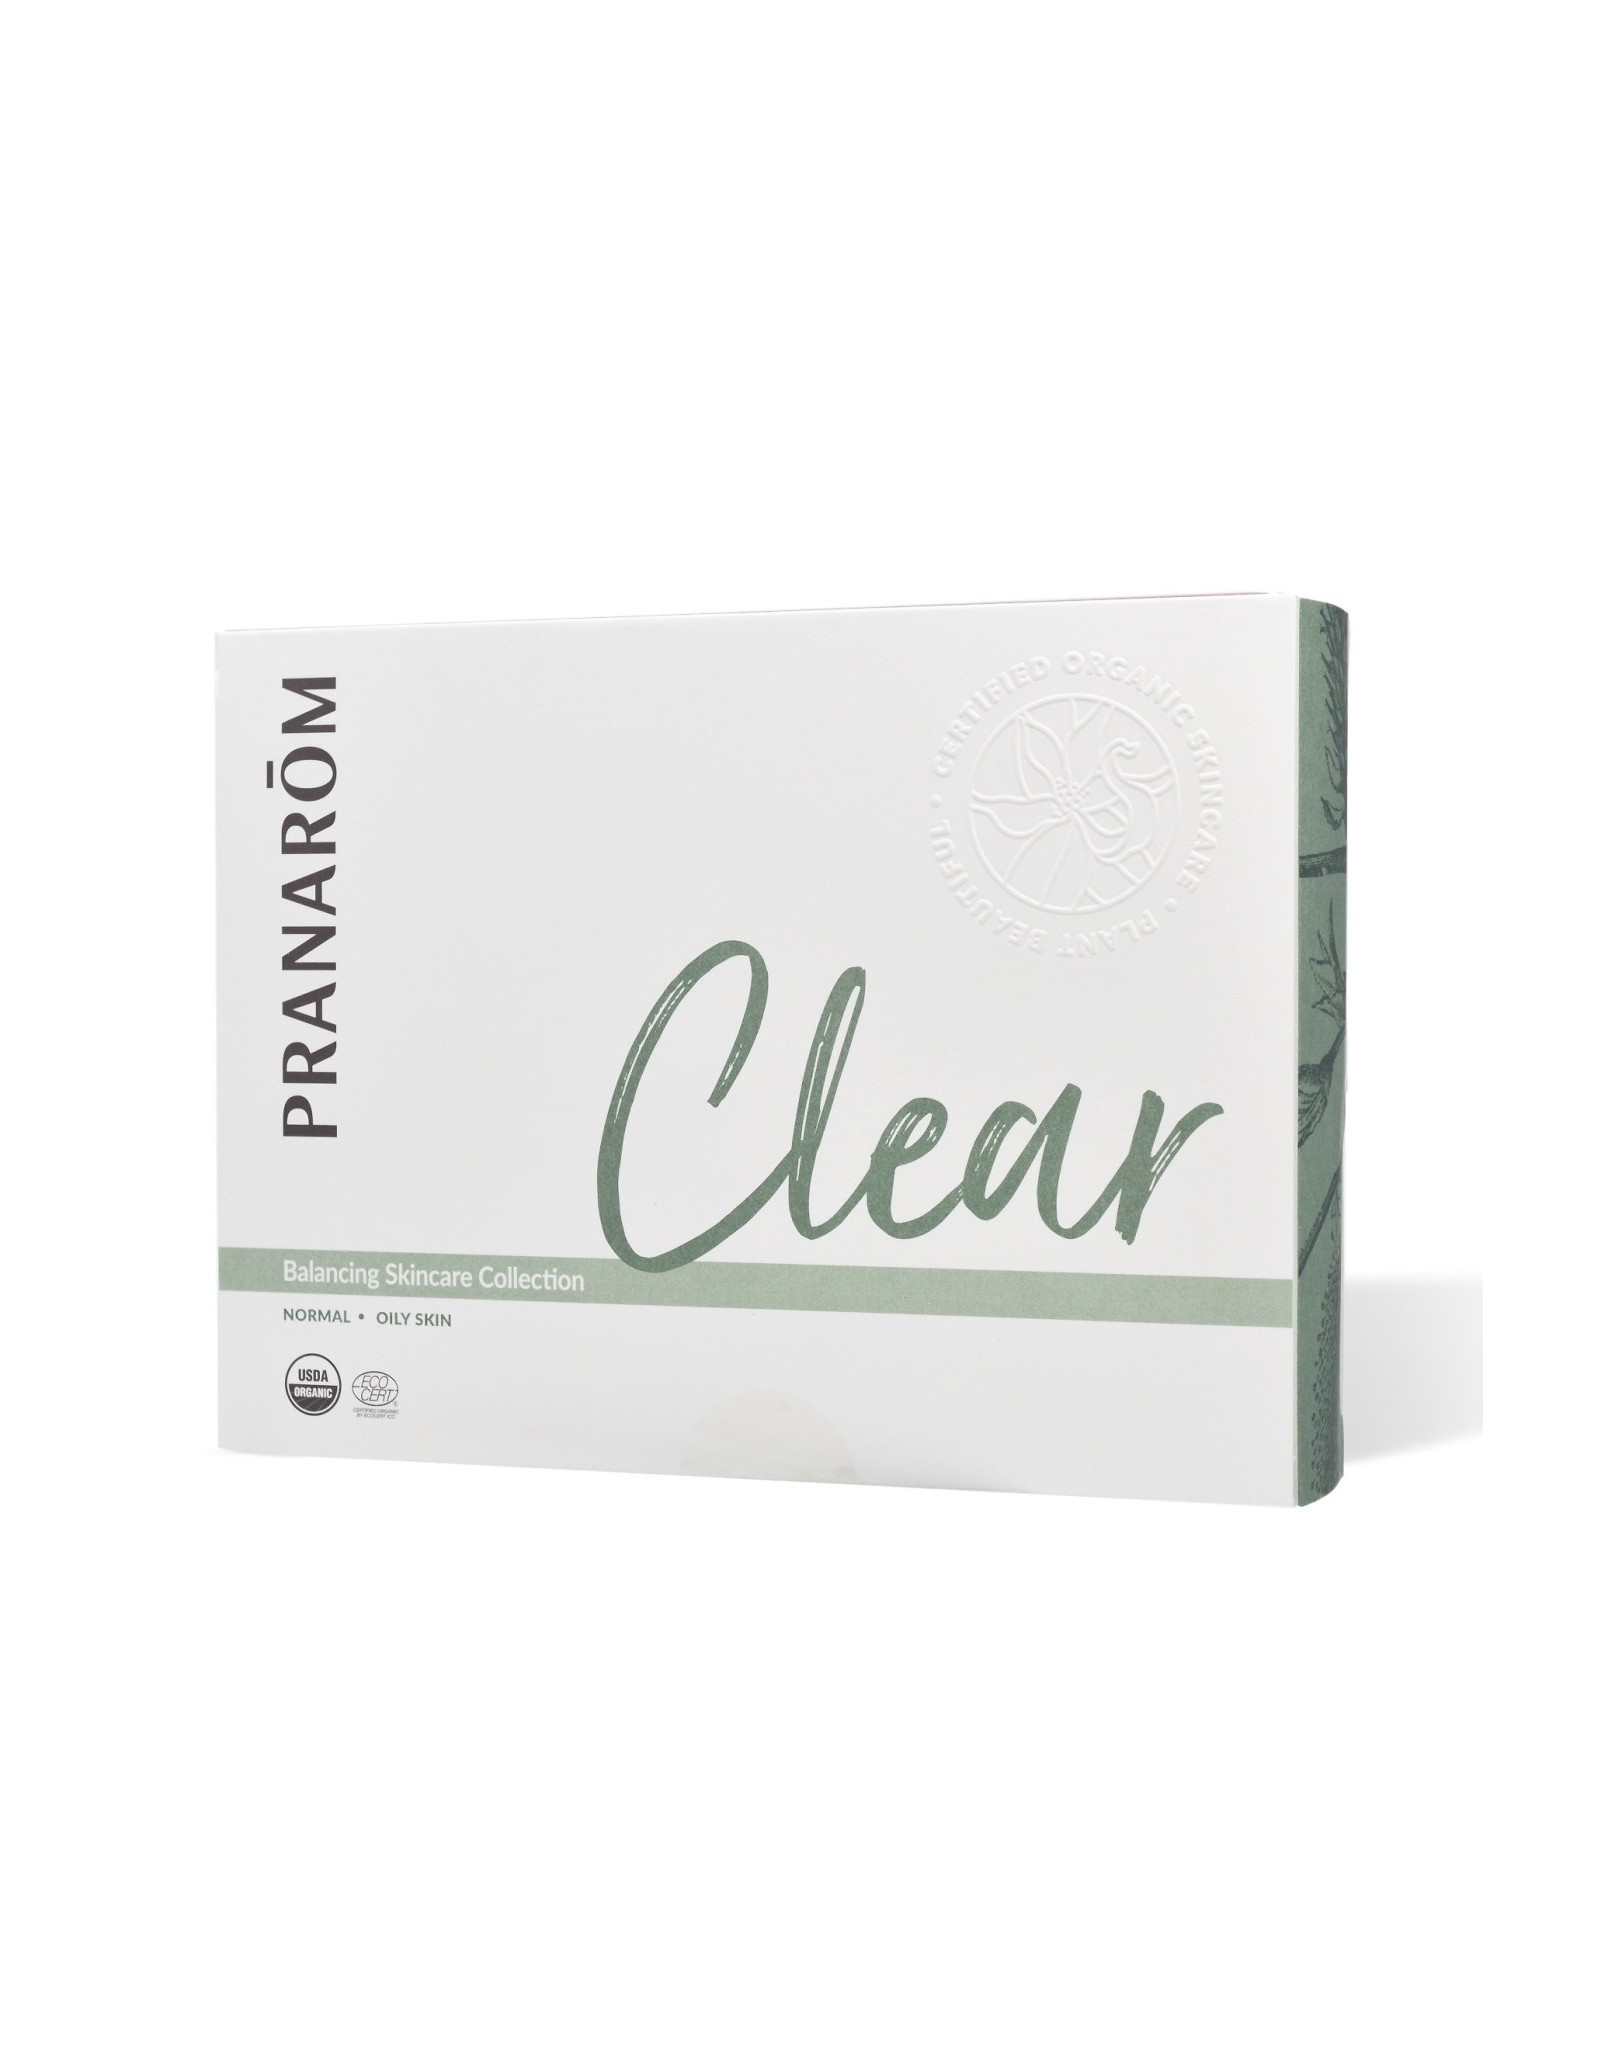 Clear Balancing Skincare Collection